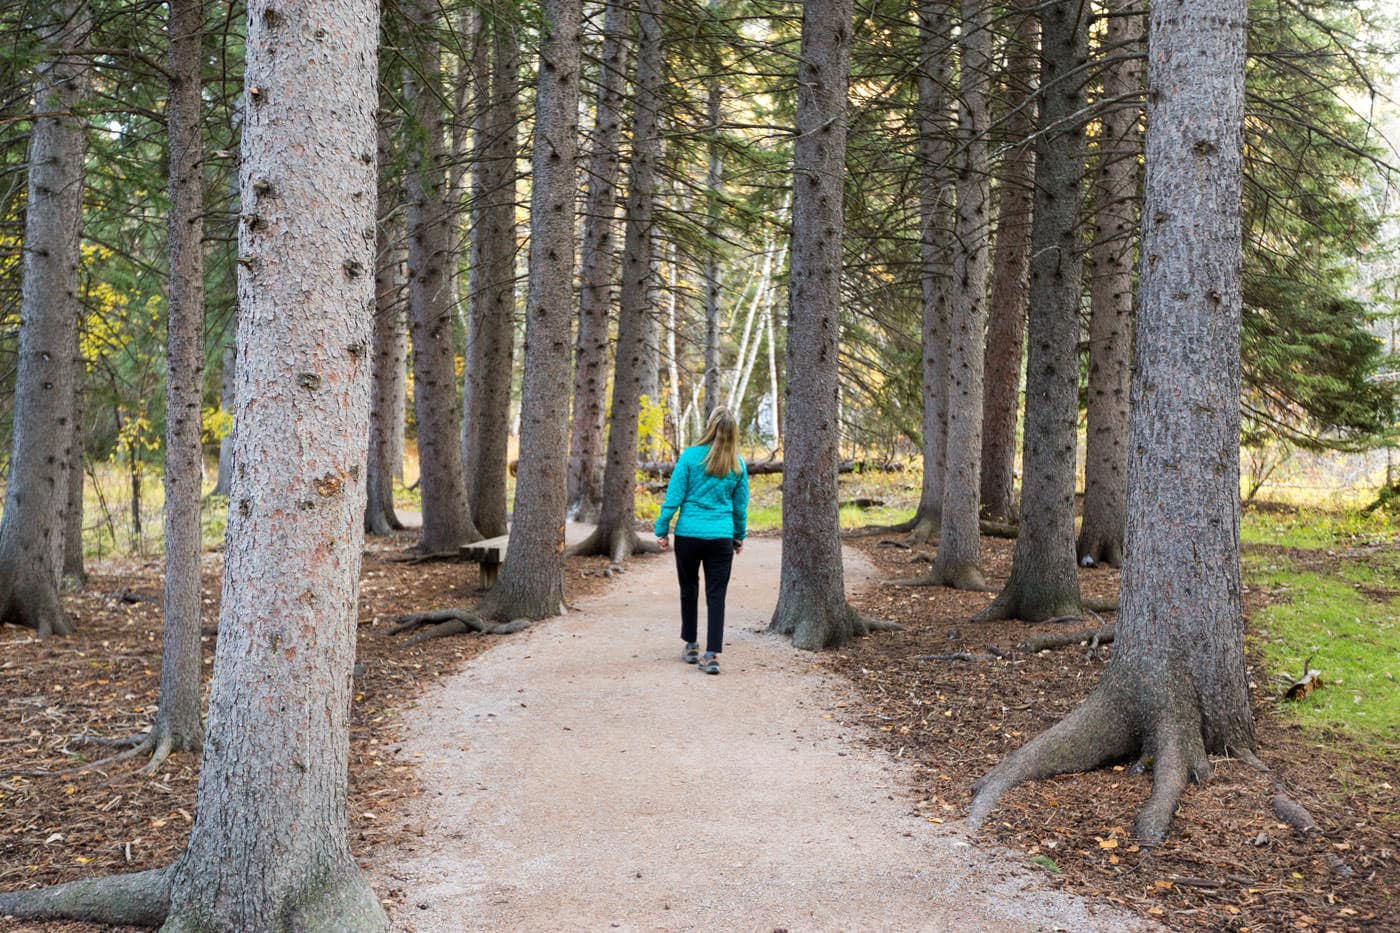 A woman on a trail between trees.